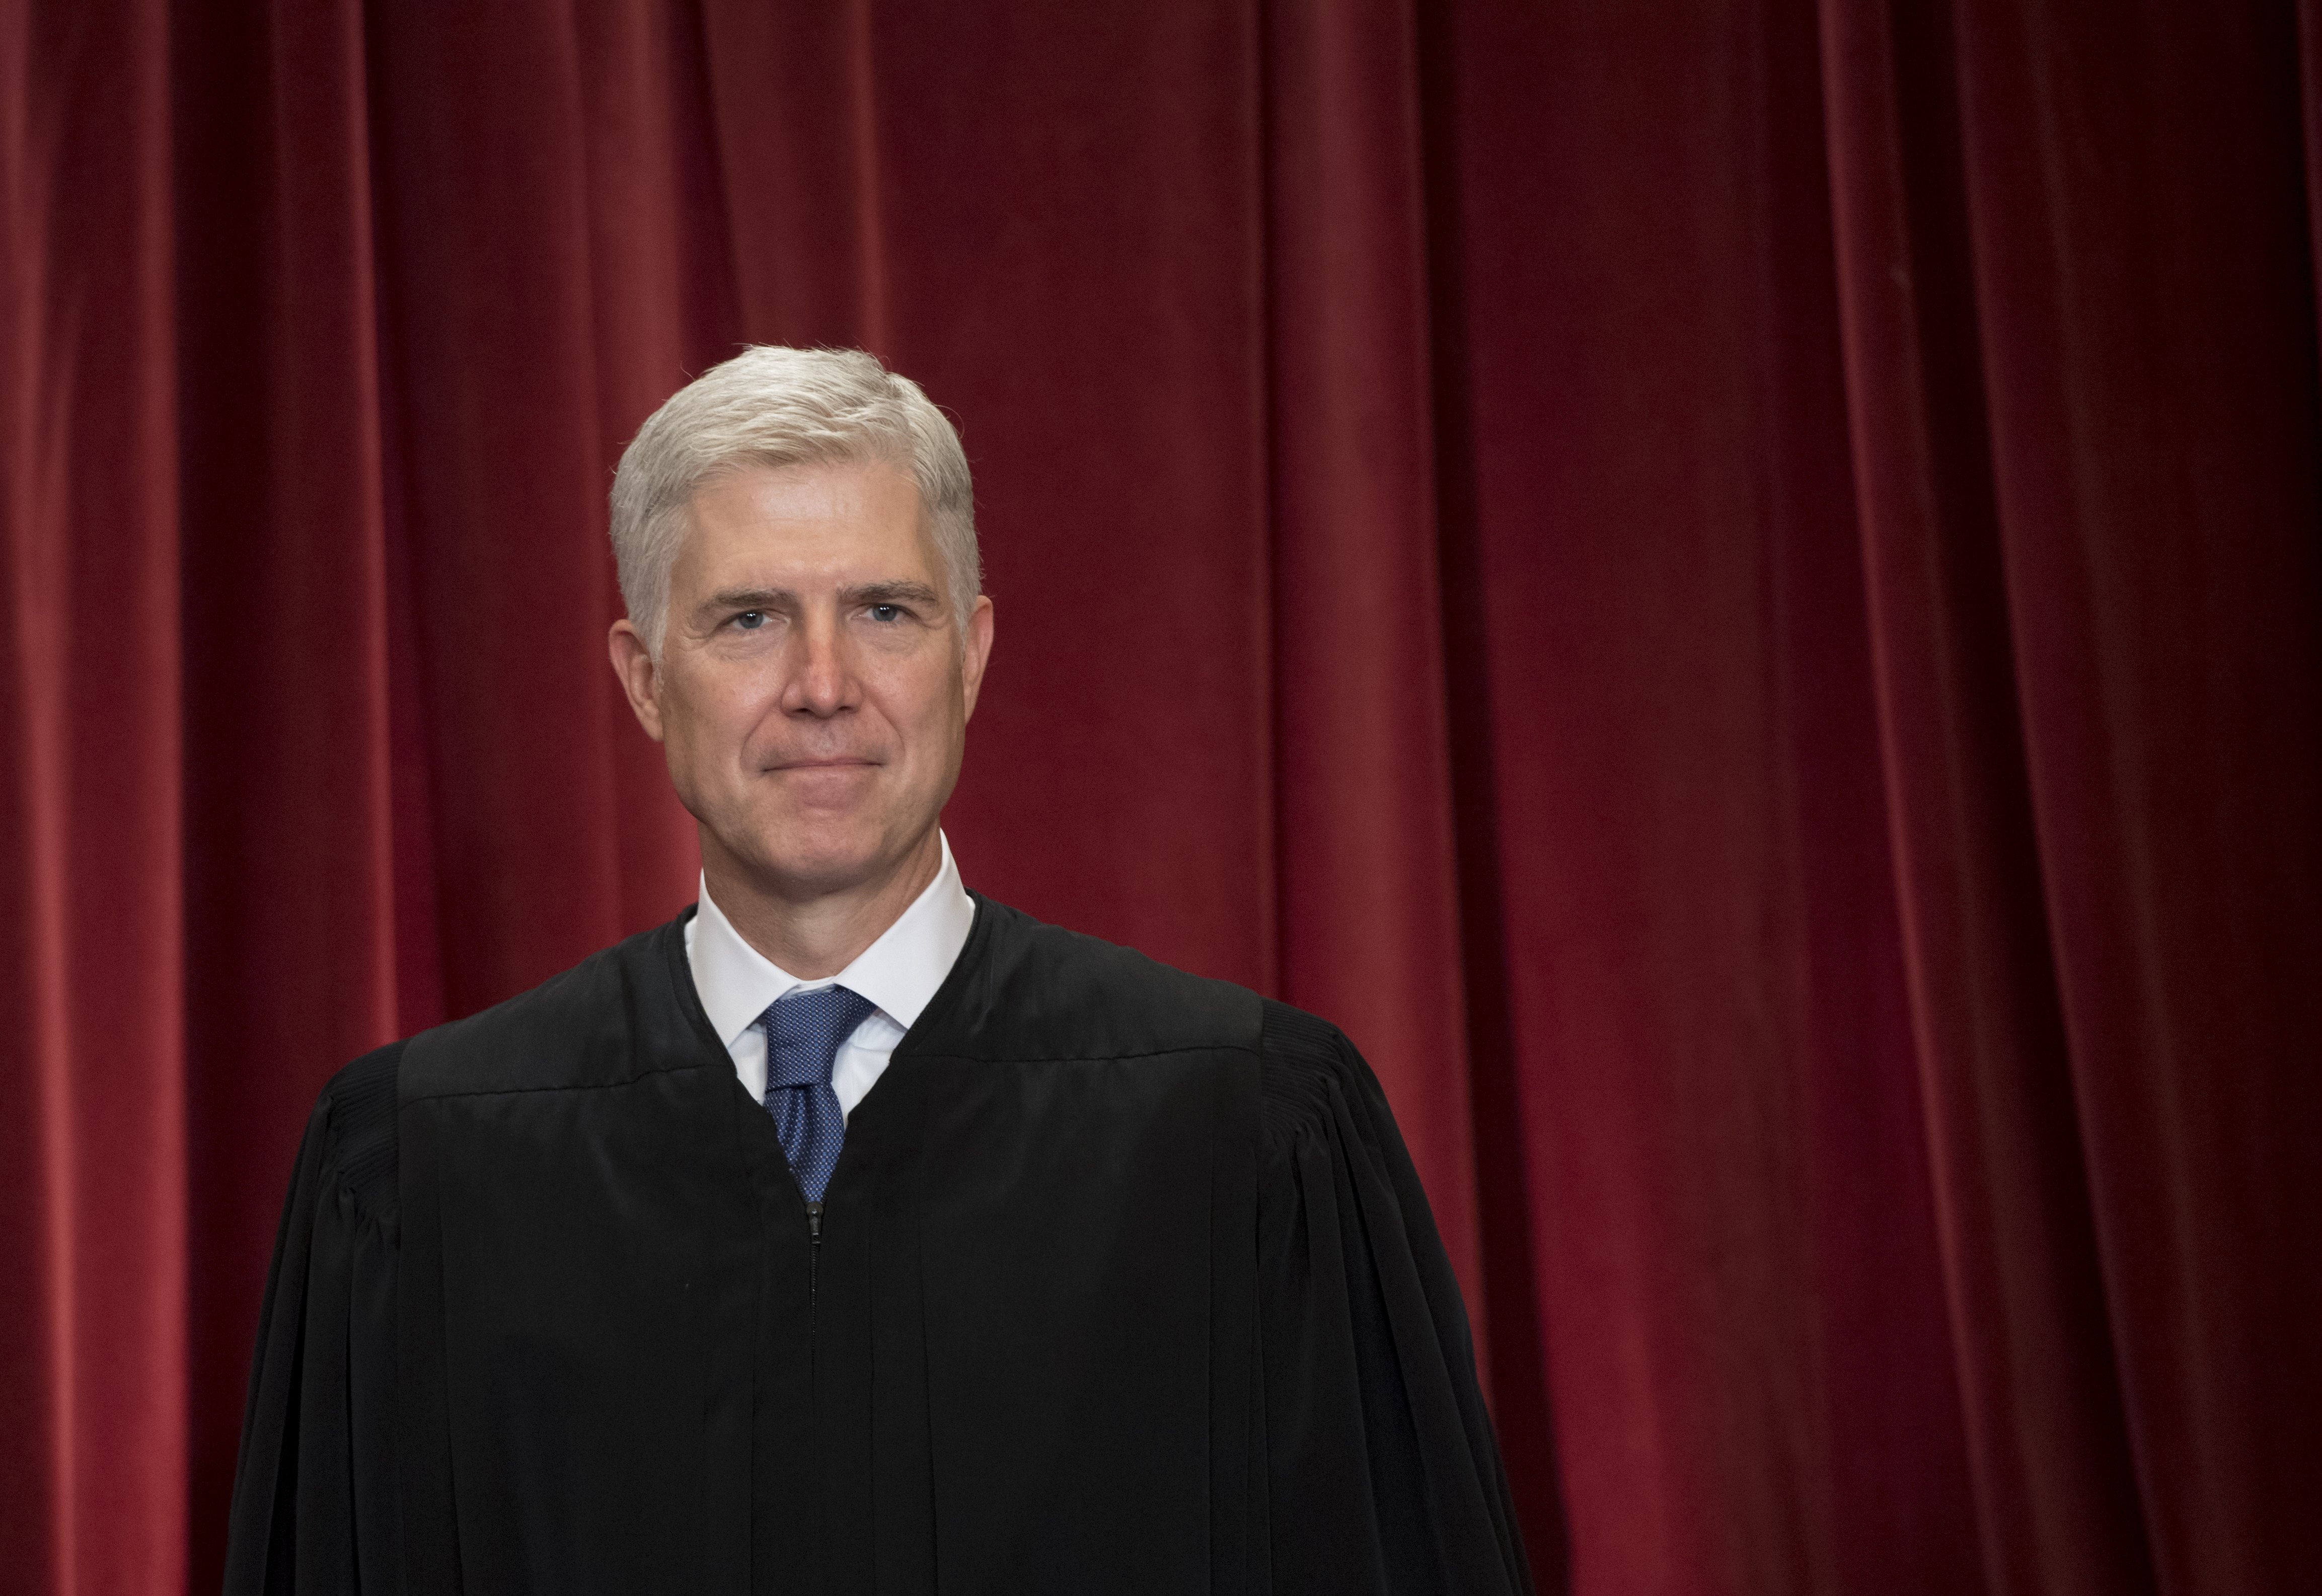 Justice Neil Gorsuch stands for an official photo with other members of the Supreme Court on June 1, 2017. (Saul Loeb/AFP/Getty Images)